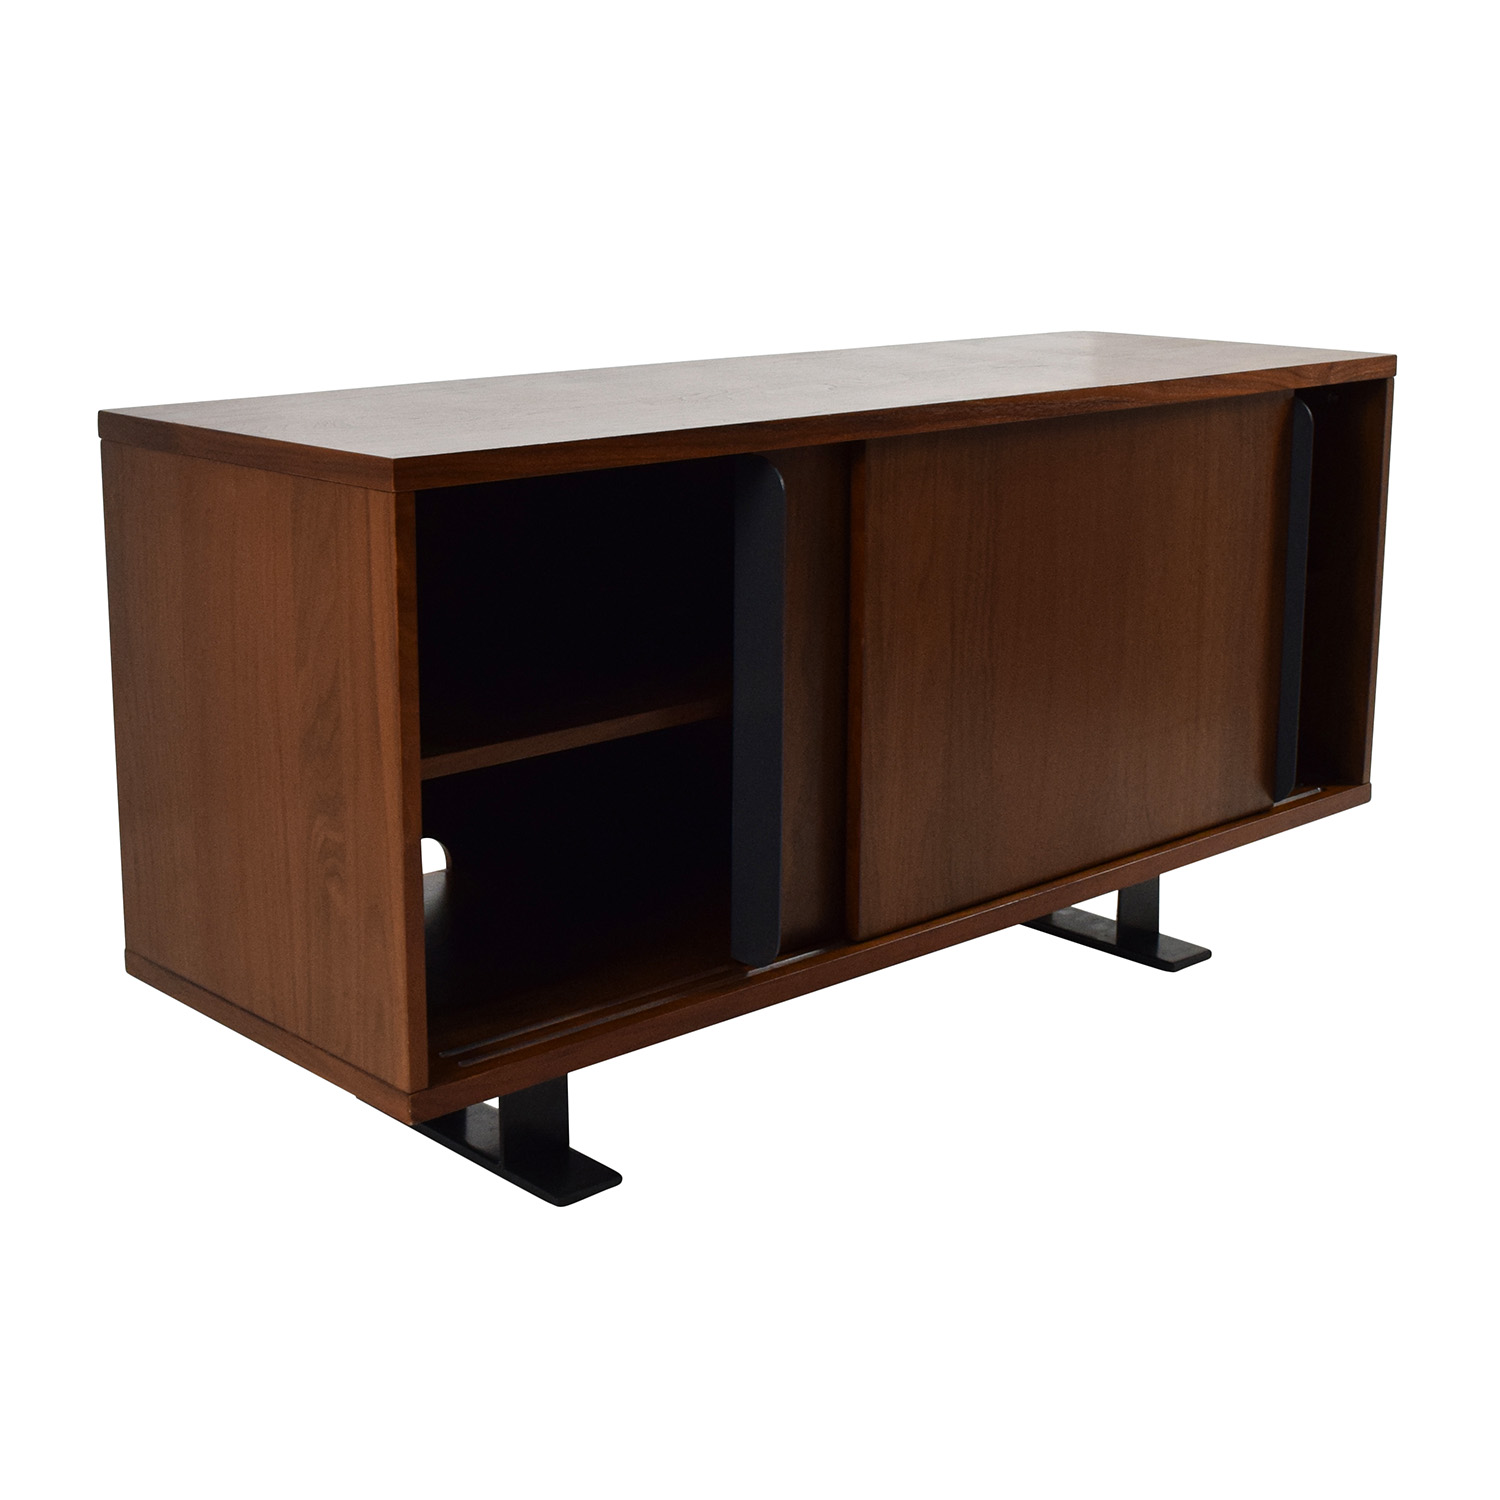 modern stereo credenza with Cb2 Cb2 Saga Credenza on Reserved Mid Century Modern Perception further Executive Credenza furthermore 182002774231 furthermore Teak Entertainment Center Scan Design Teak Entertainment Center Scandinavian Teak Entertainment Center furthermore Id F 996822.